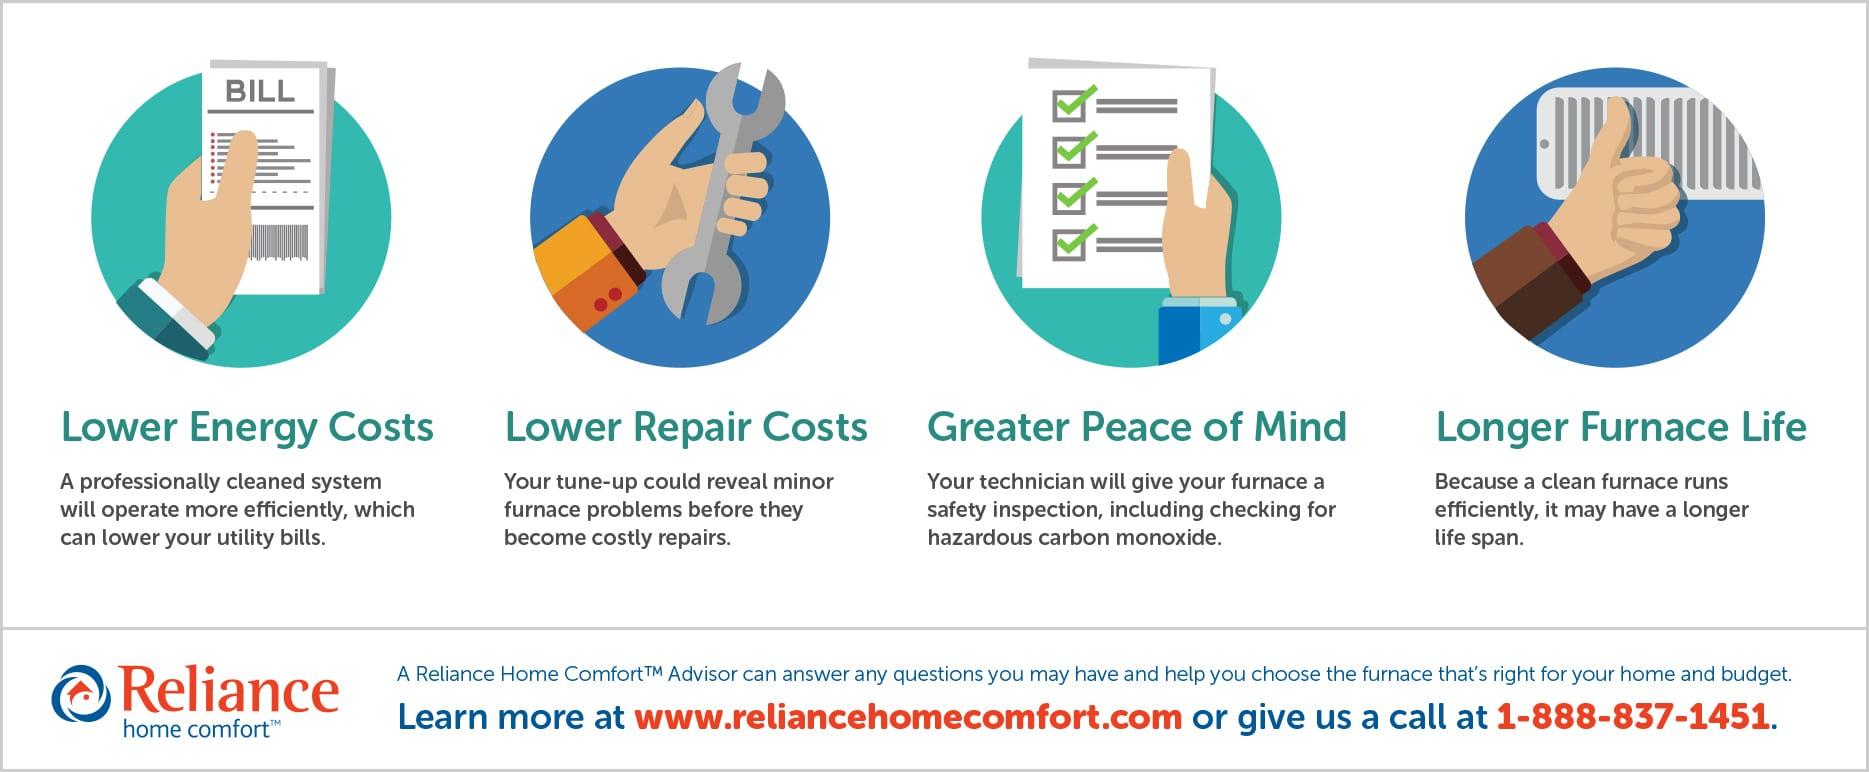 Benefits of a furnace inspection infographic by Reliance Home Comfort